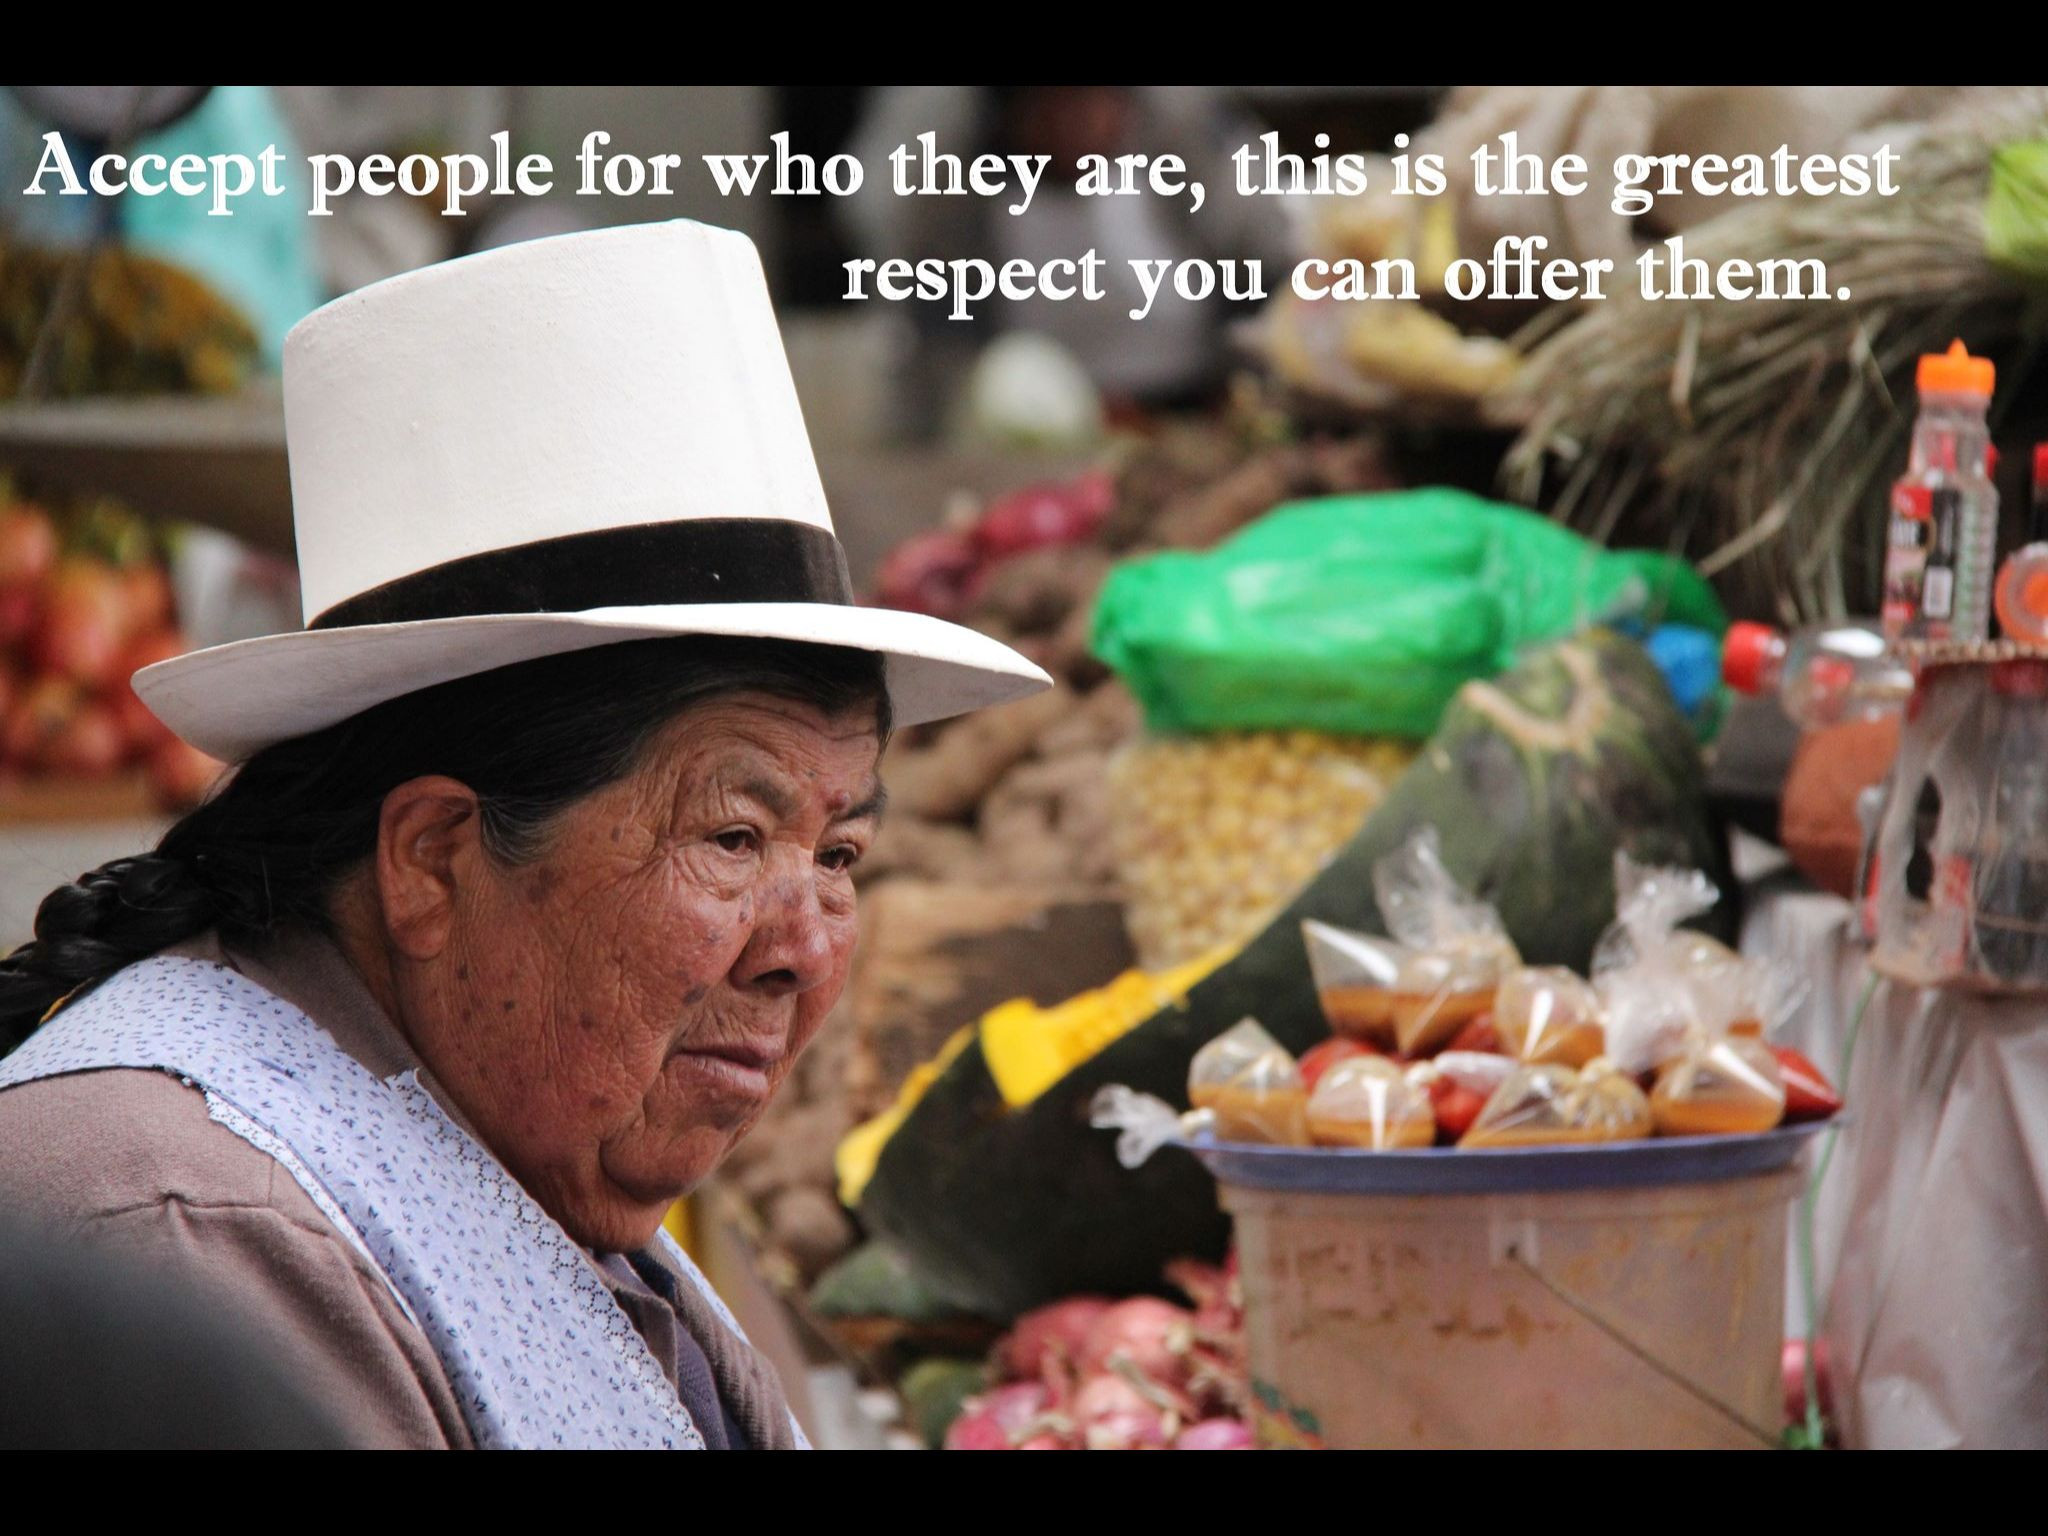 Accept people for who they are. This is the greatest respect you can offer them.